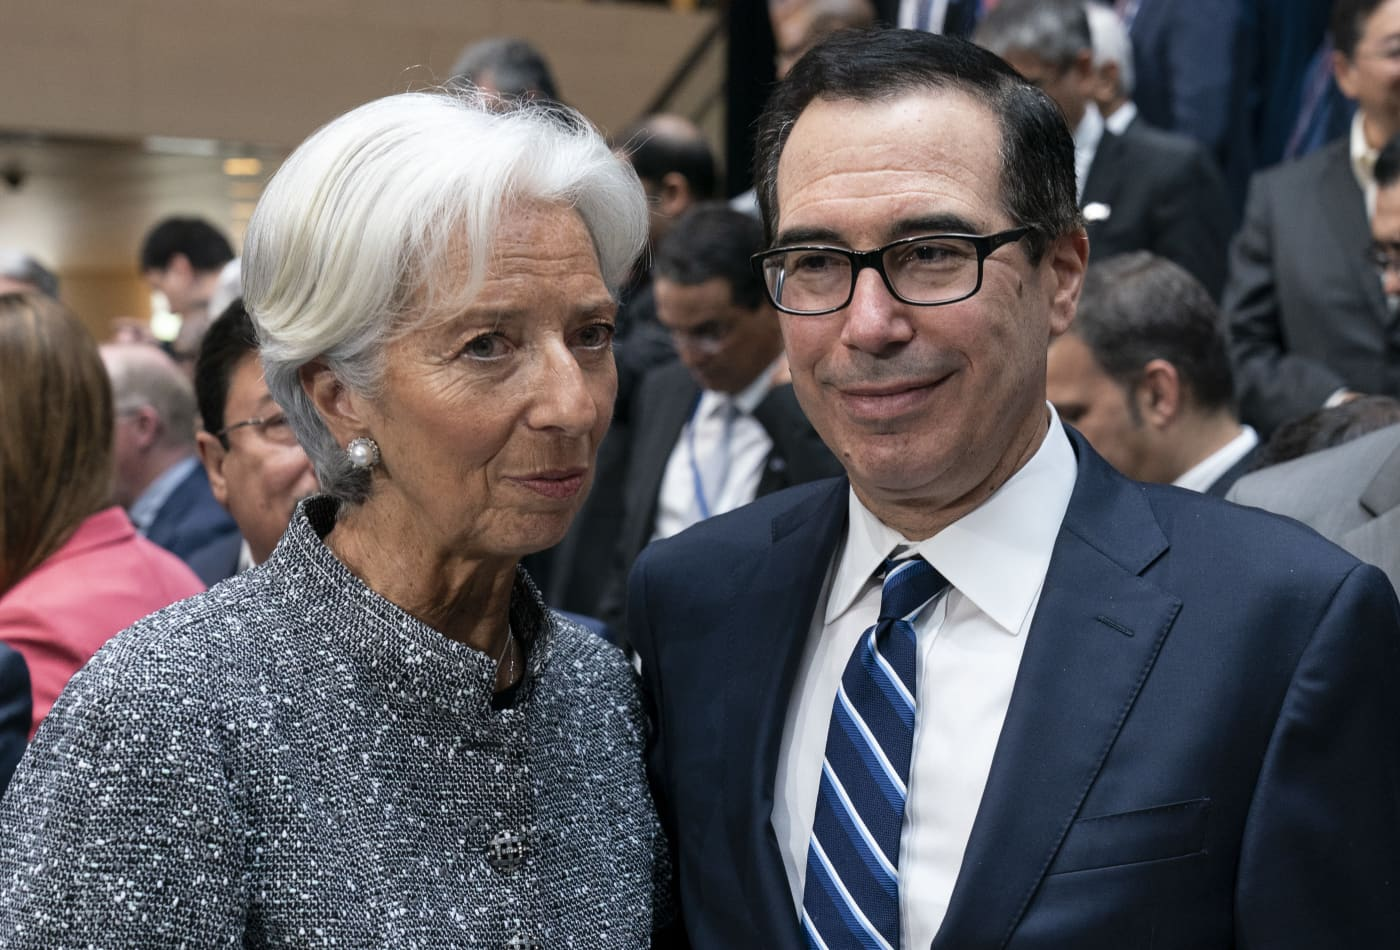 'If you want to put a tax on people, go ahead': Lagarde and Mnuchin clash over energy transition